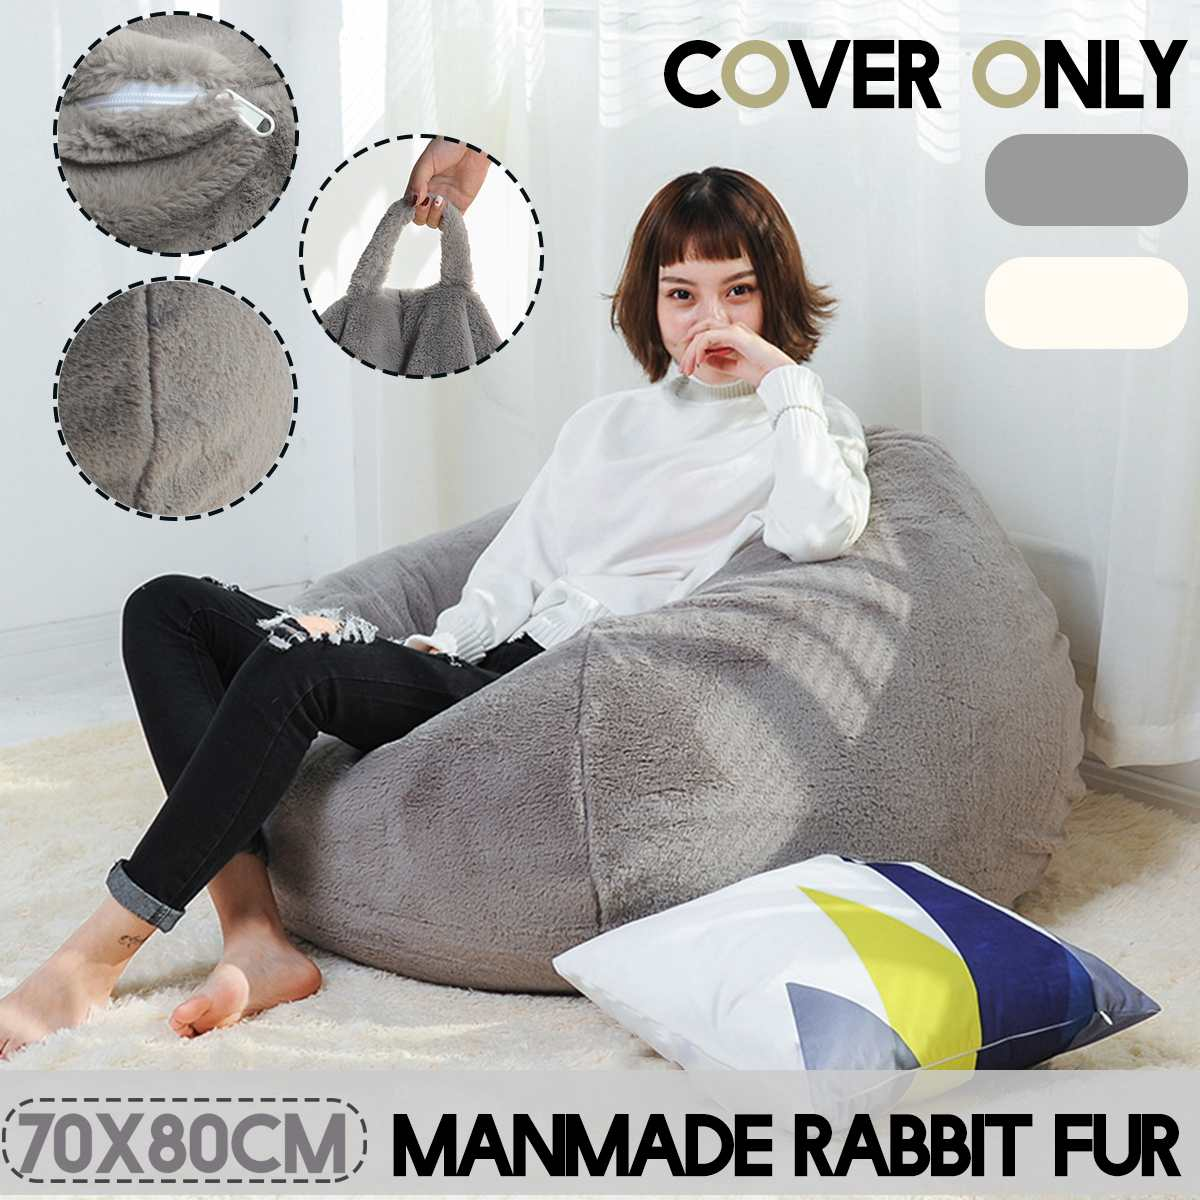 Handmade Rabbit Fur Lazy Sofas Cover Chairs Without Filler Cloth Lounger Seat Bean Bag Pouf Puff Couch Tatami Living Room70x80cm